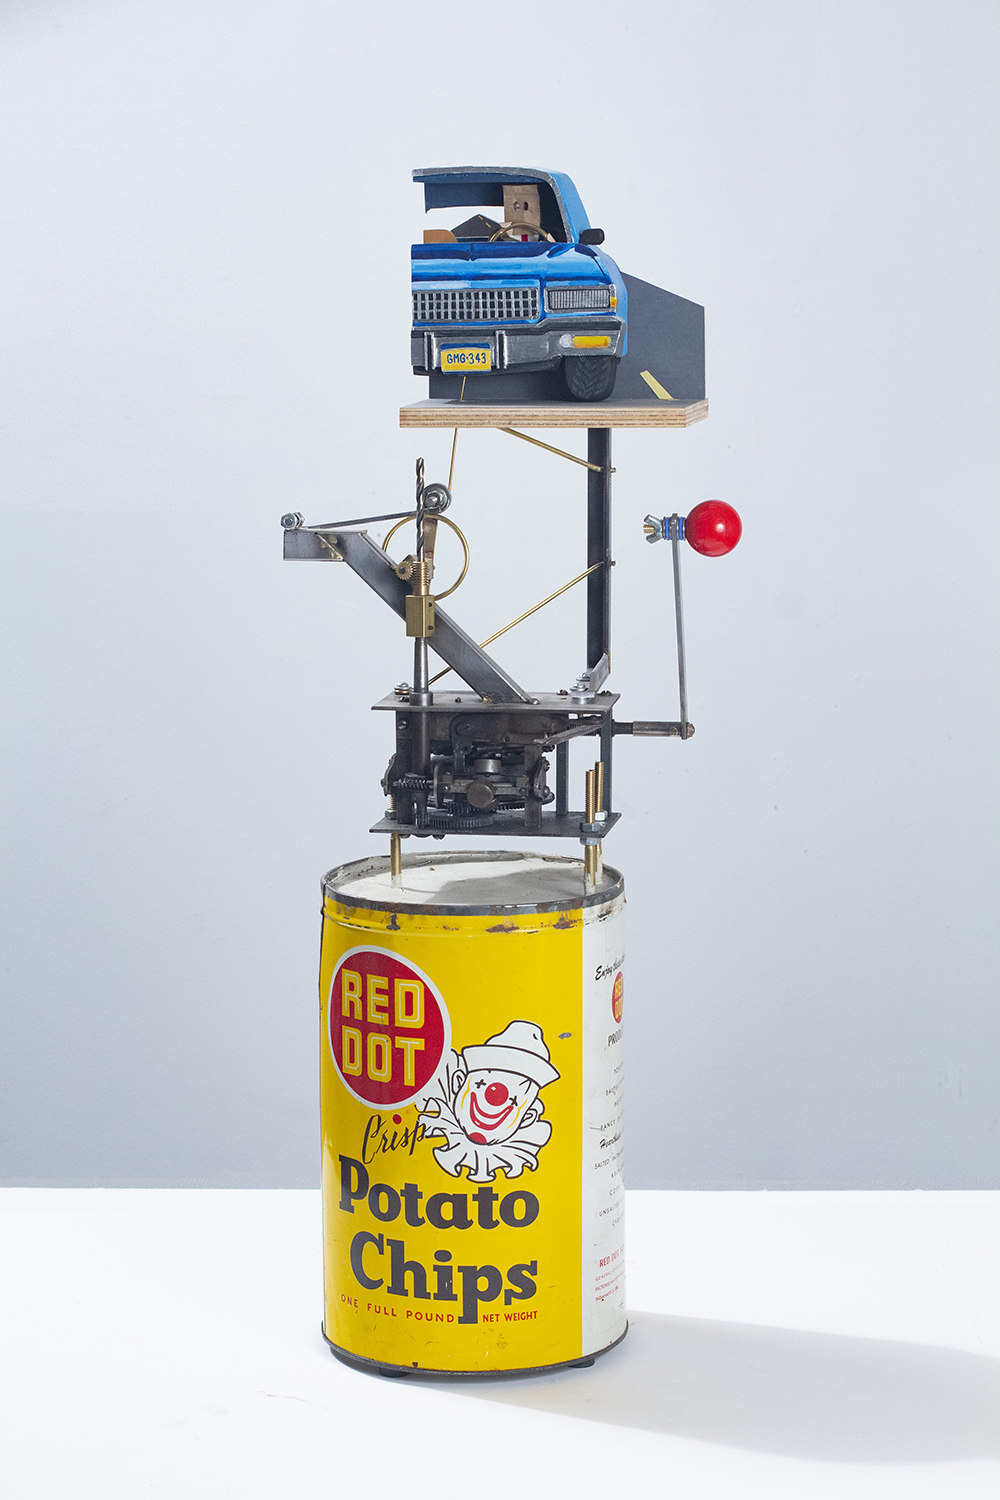 Nick Doyle. <em>Executive Toy: The Lonely Road</em>, 2019. Concrete, vintage tin, steel, brass, arcade game joystick, plywood, hardware, sandpaper, flashe, silica bronze, paper bag, skateboard bearing, denim, paper, cotton and phonograph motor, 28 1/2 x 11 1/2 x 7 inches (72.4 x 29.2 x 17.8 cm)